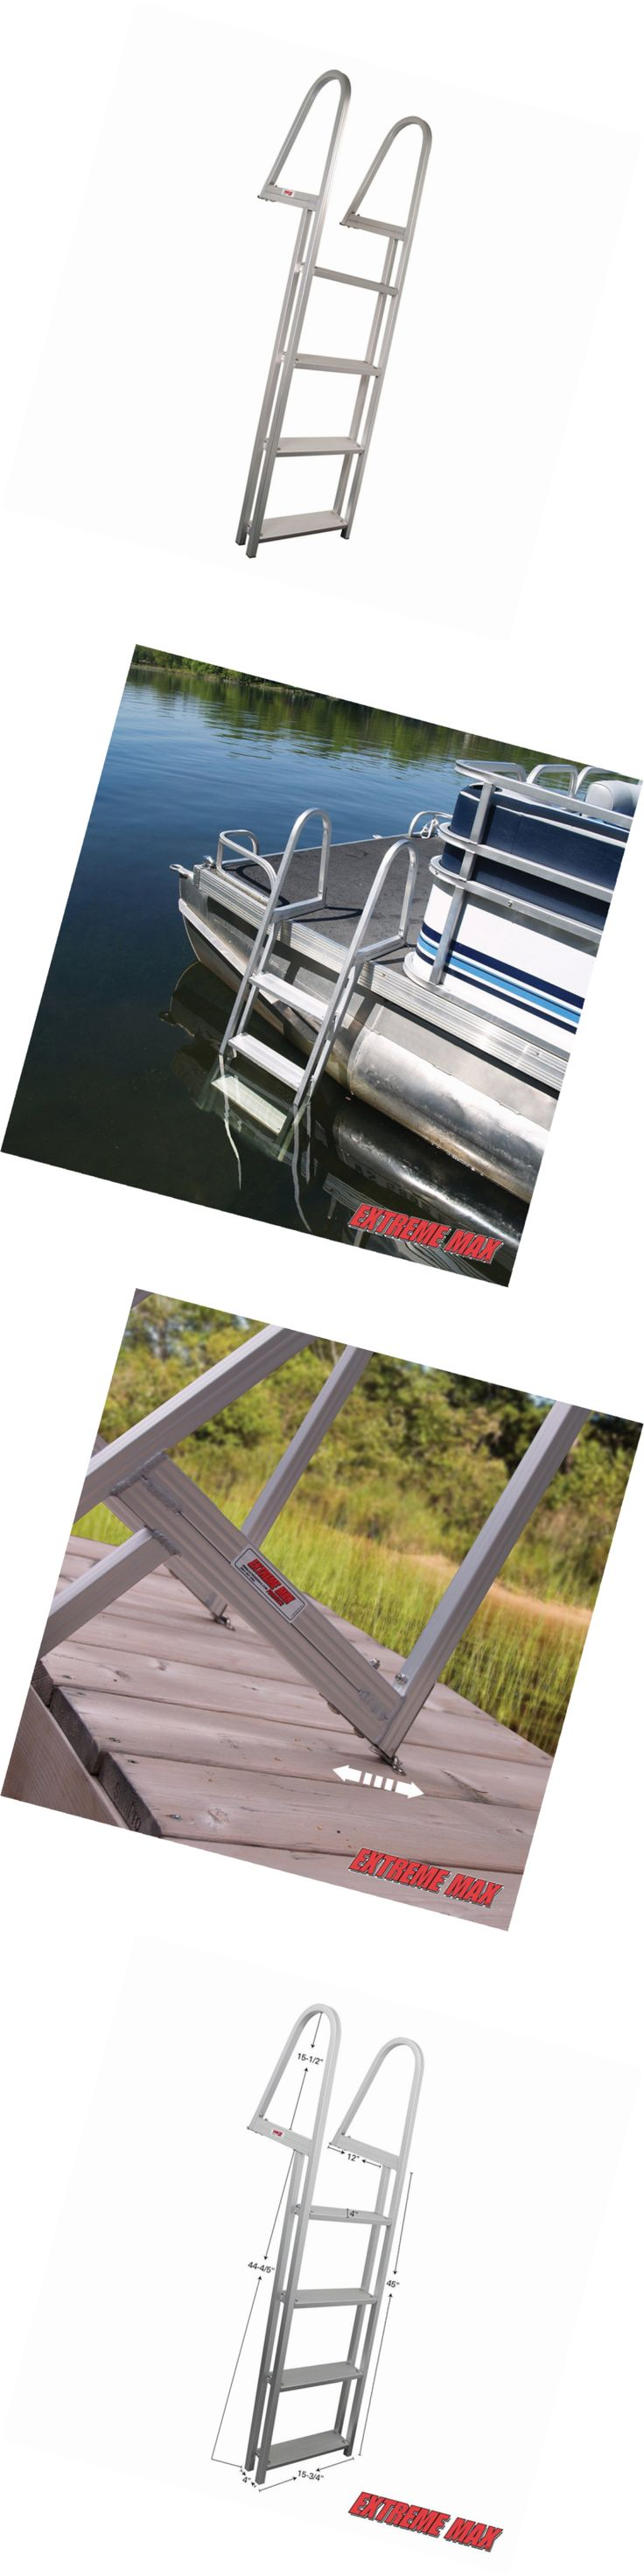 Other Water Sports 159151: Extreme Max 3005.3380 4-Step Pontoon Dock Ladder -> BUY IT NOW ONLY: $123.38 on eBay!